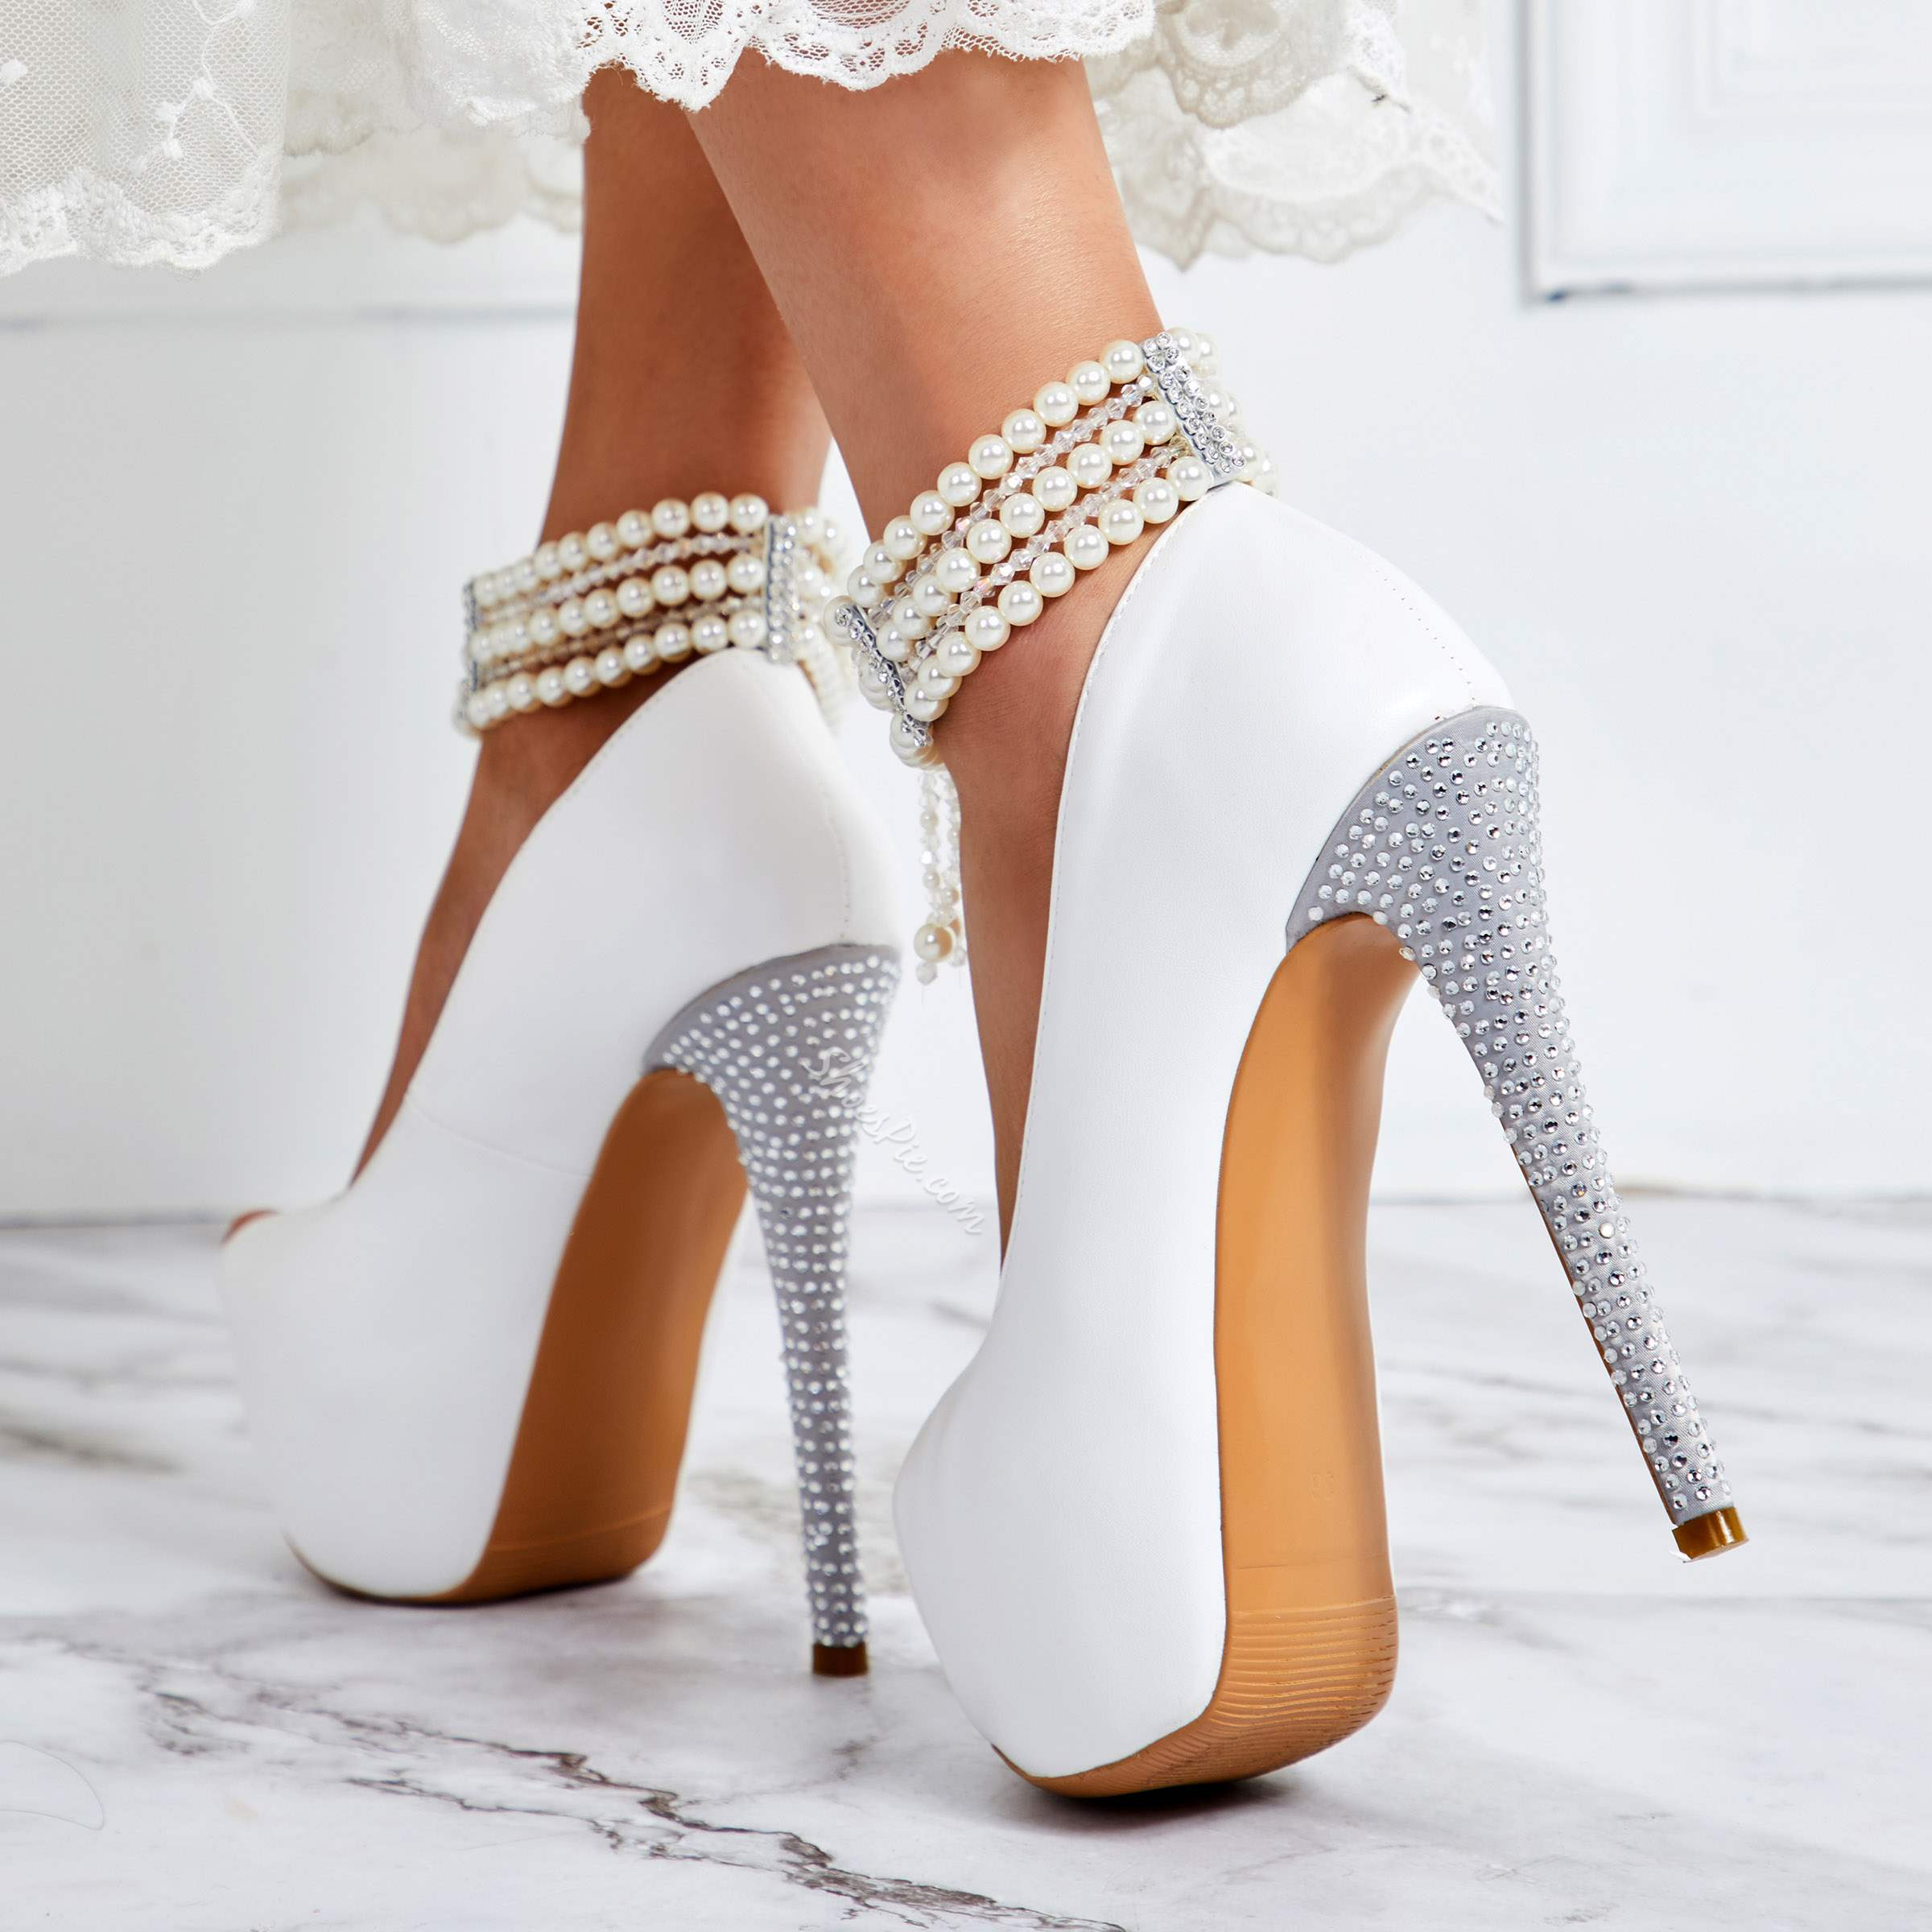 Shoespie White Pearl Ankle Strap High Stiletto Heels